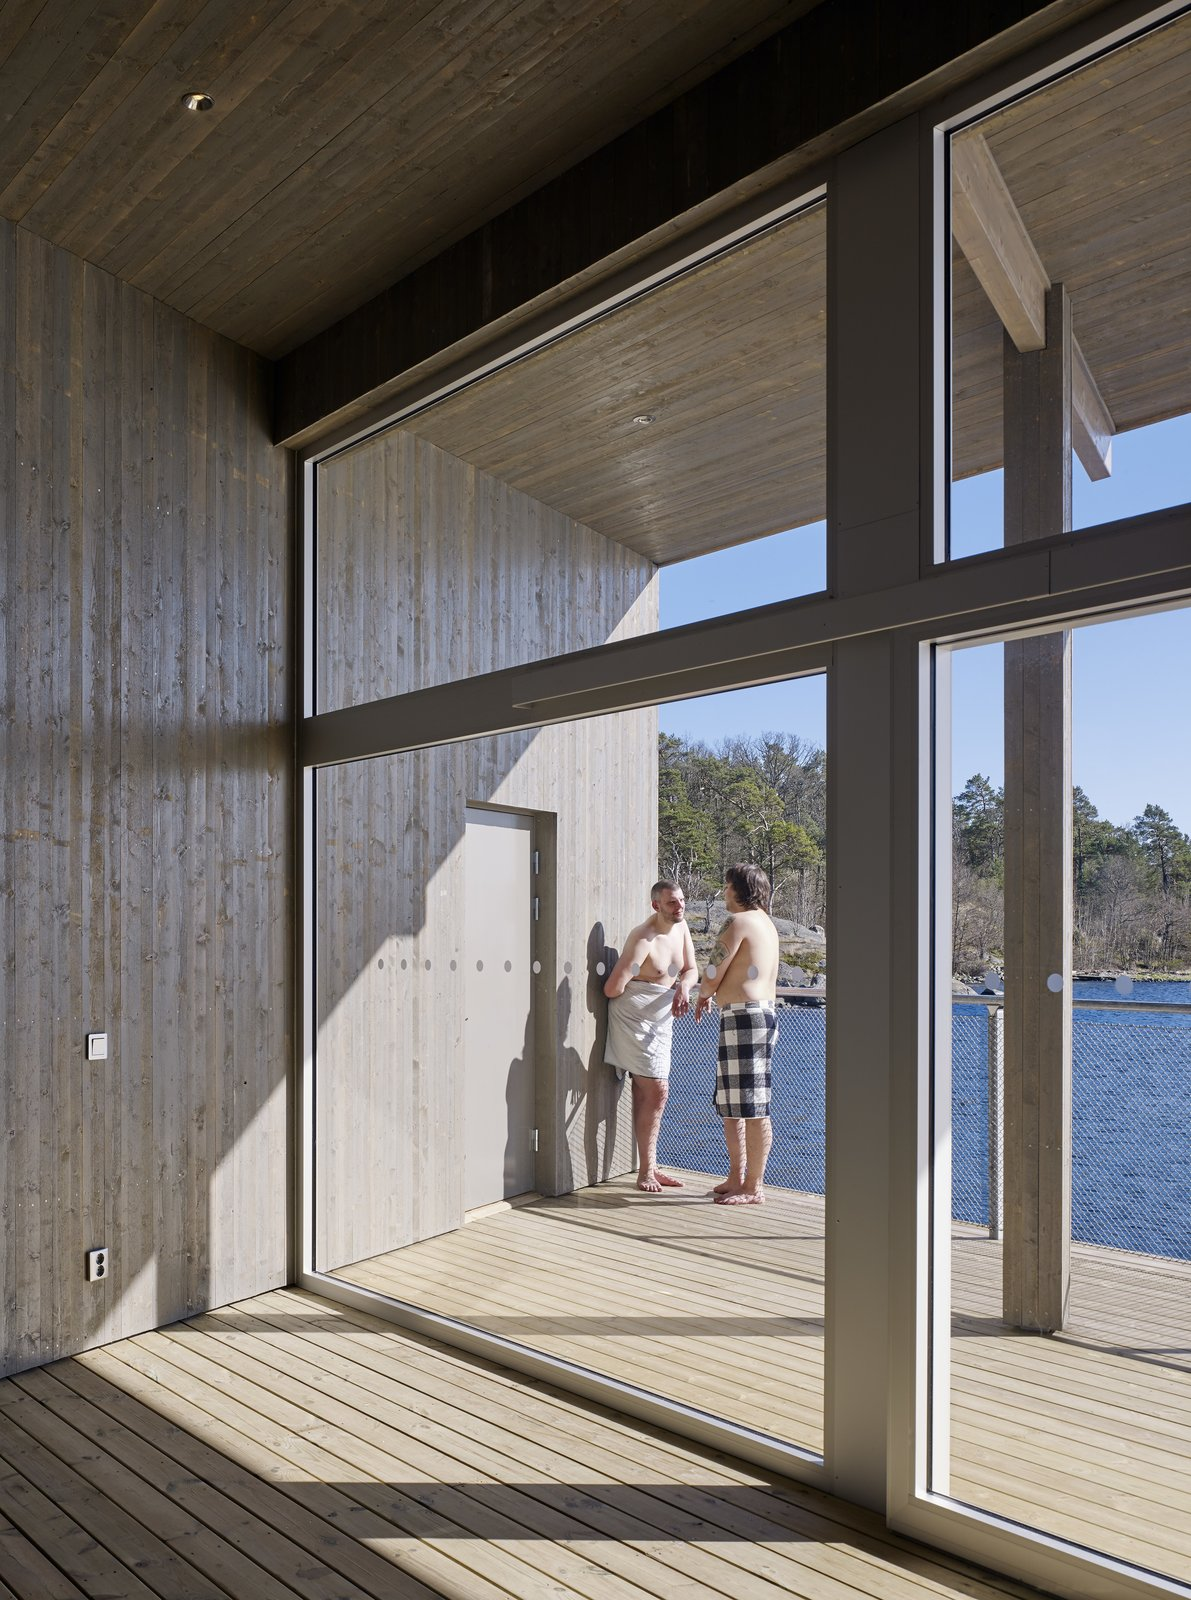 Photo 4 of 6 in A Swedish Coastal Town Commissions an Otherworldly Bathhouse